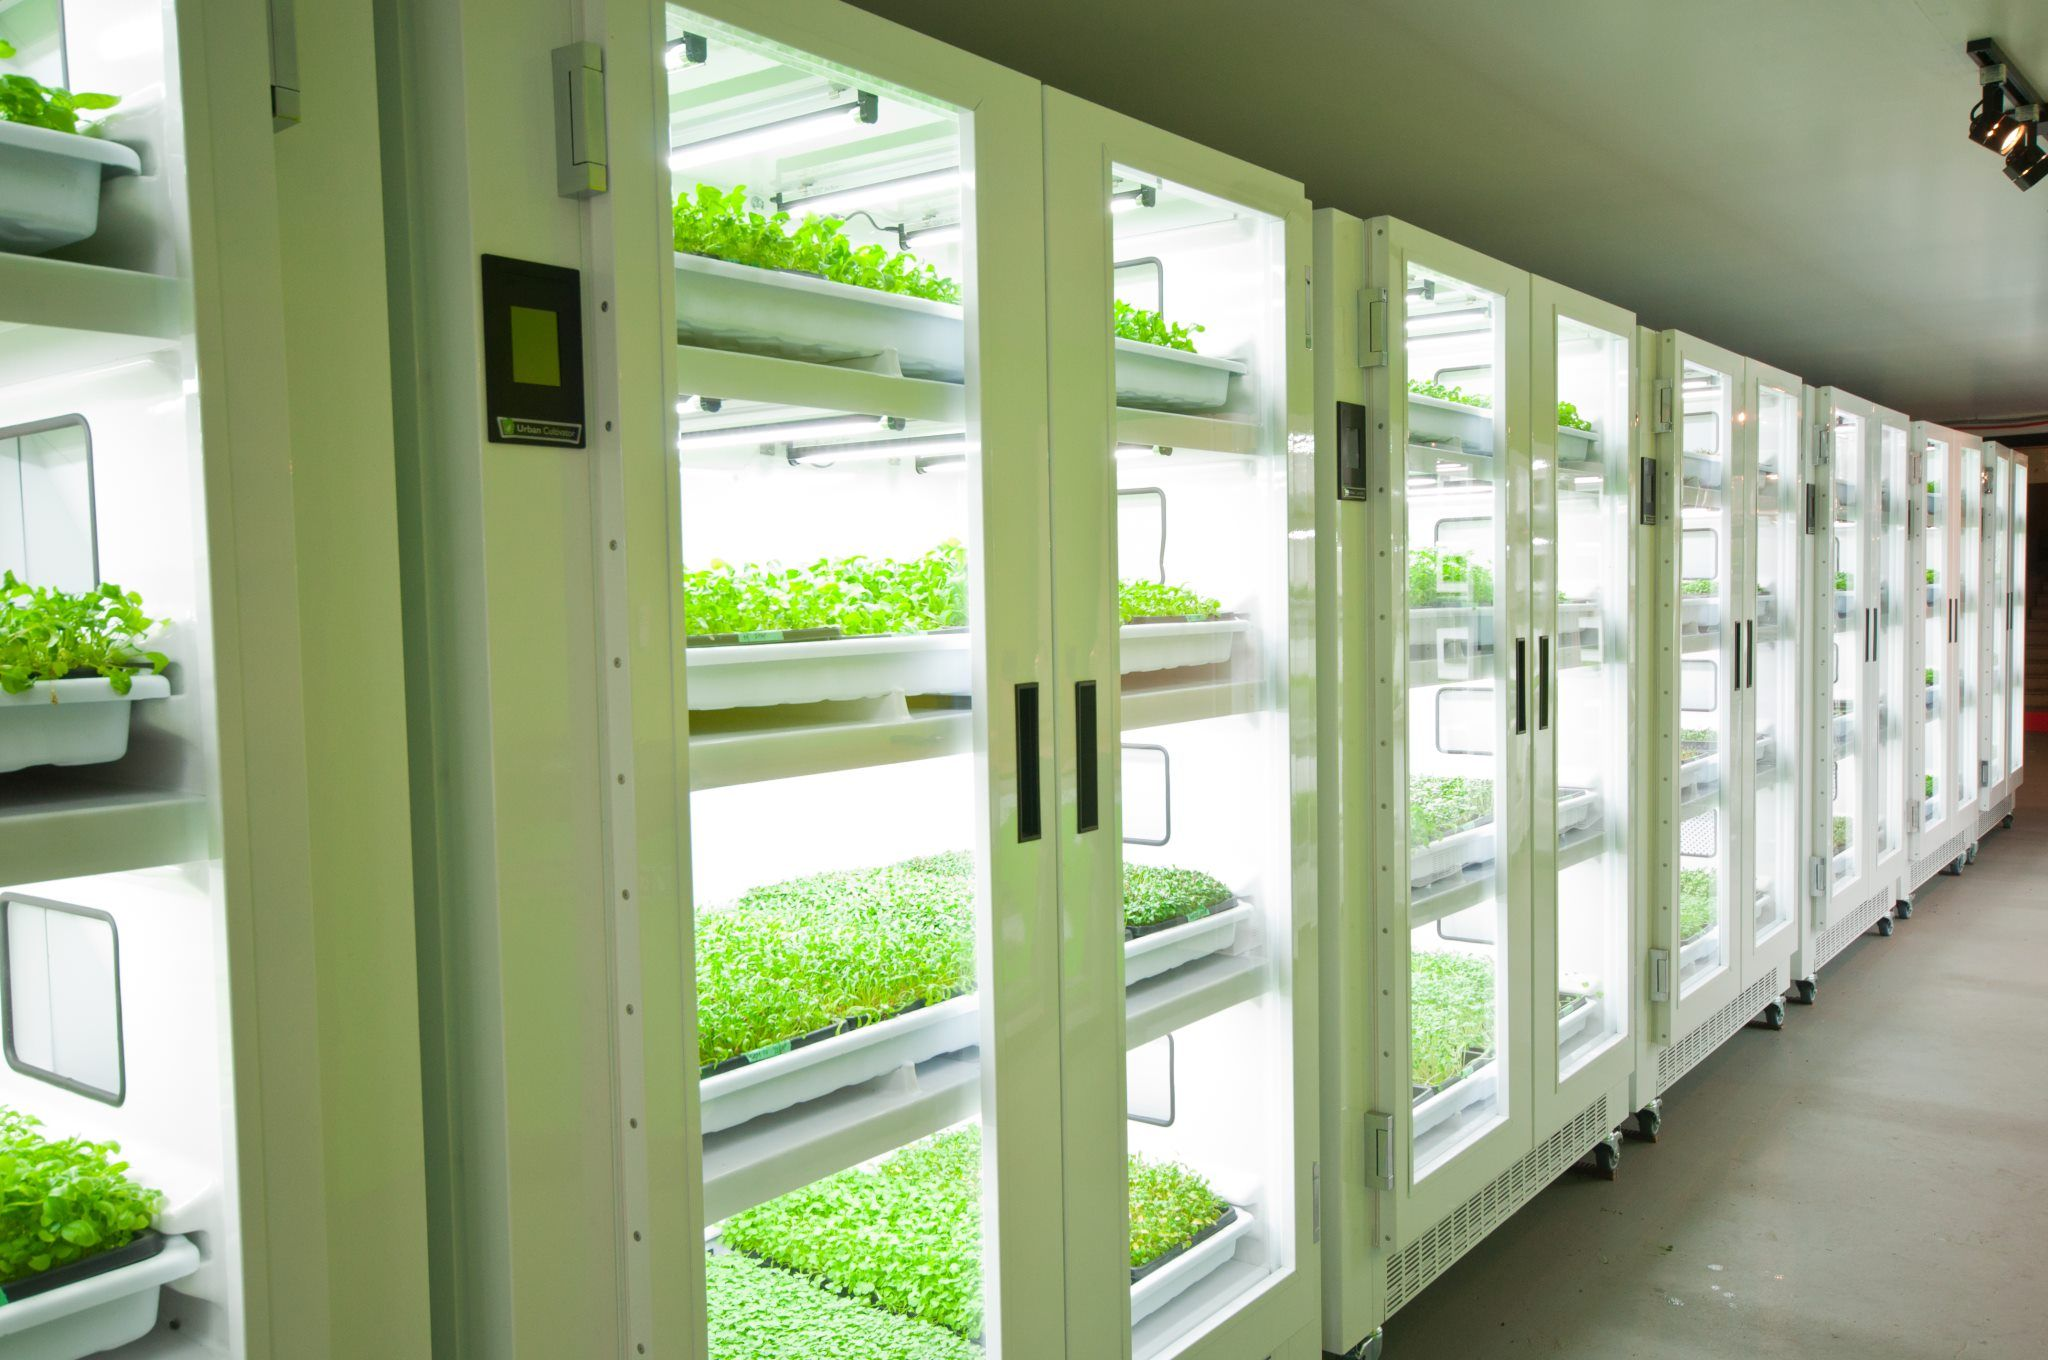 Wall Of Commercial Units For Indoor Gardening Urban Farming Microgreens Hydroponics